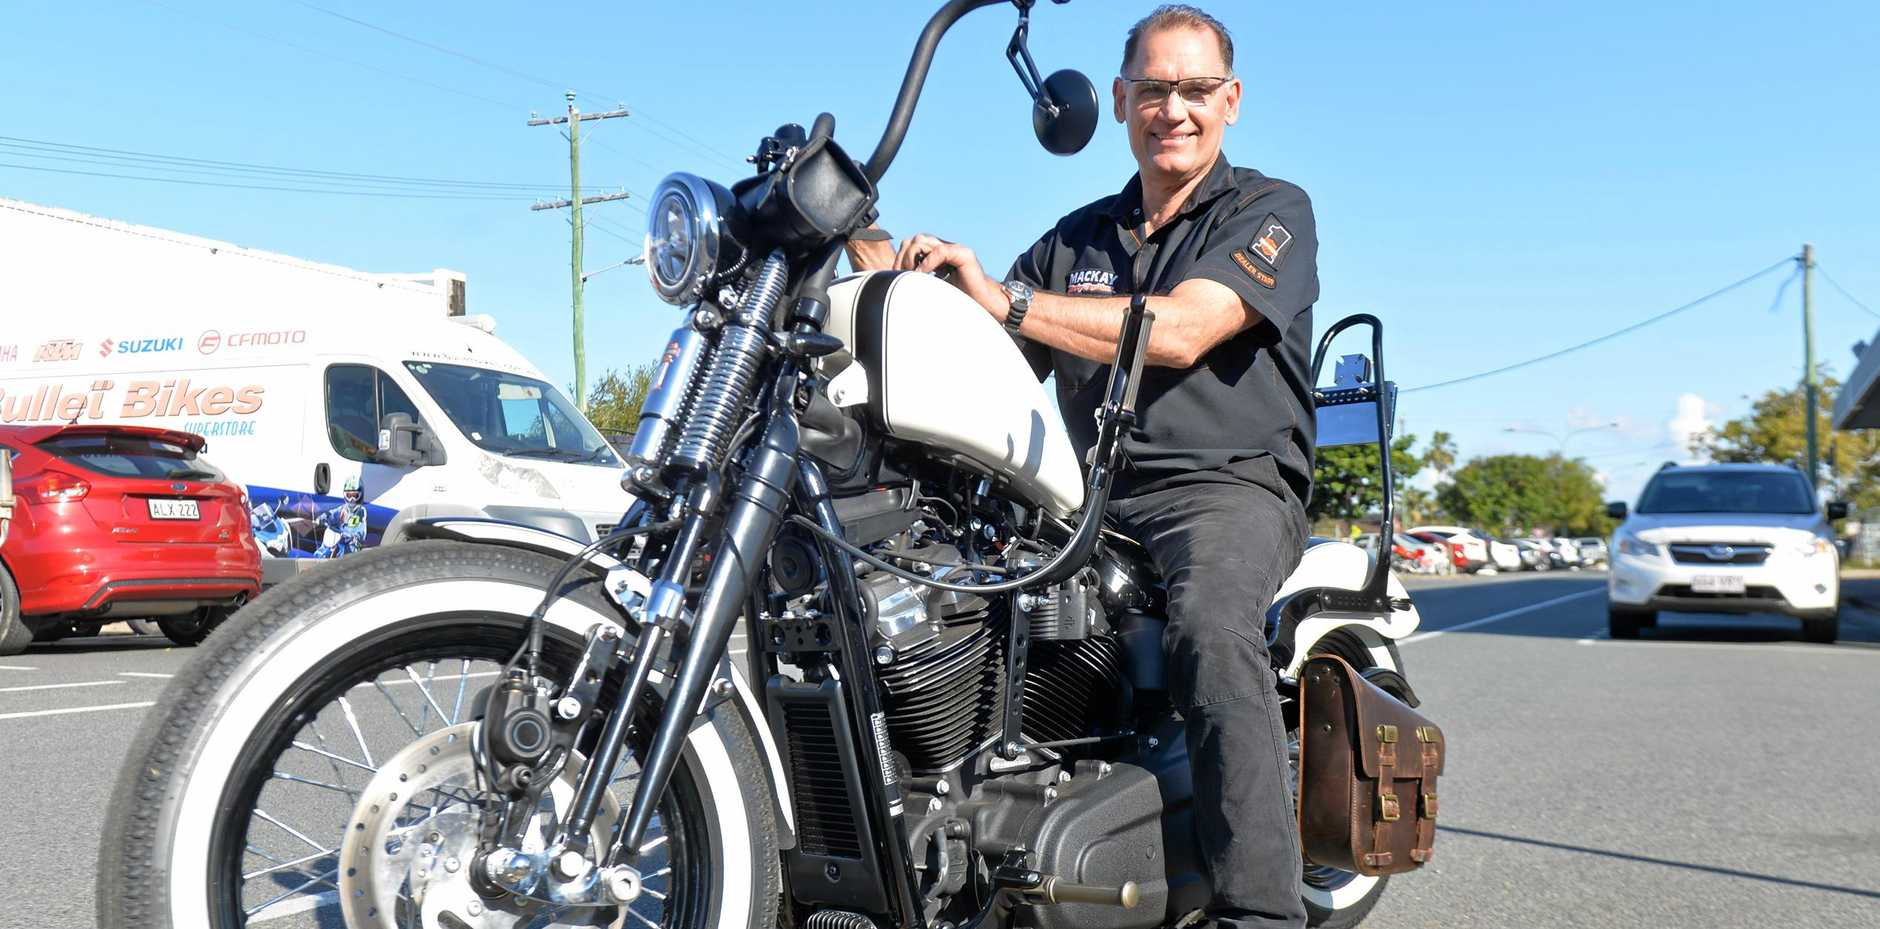 Mackay Harley-Davidson dealer principle Scott Gralow on one the 8808 registered motorbikes in the greater Mackay region.